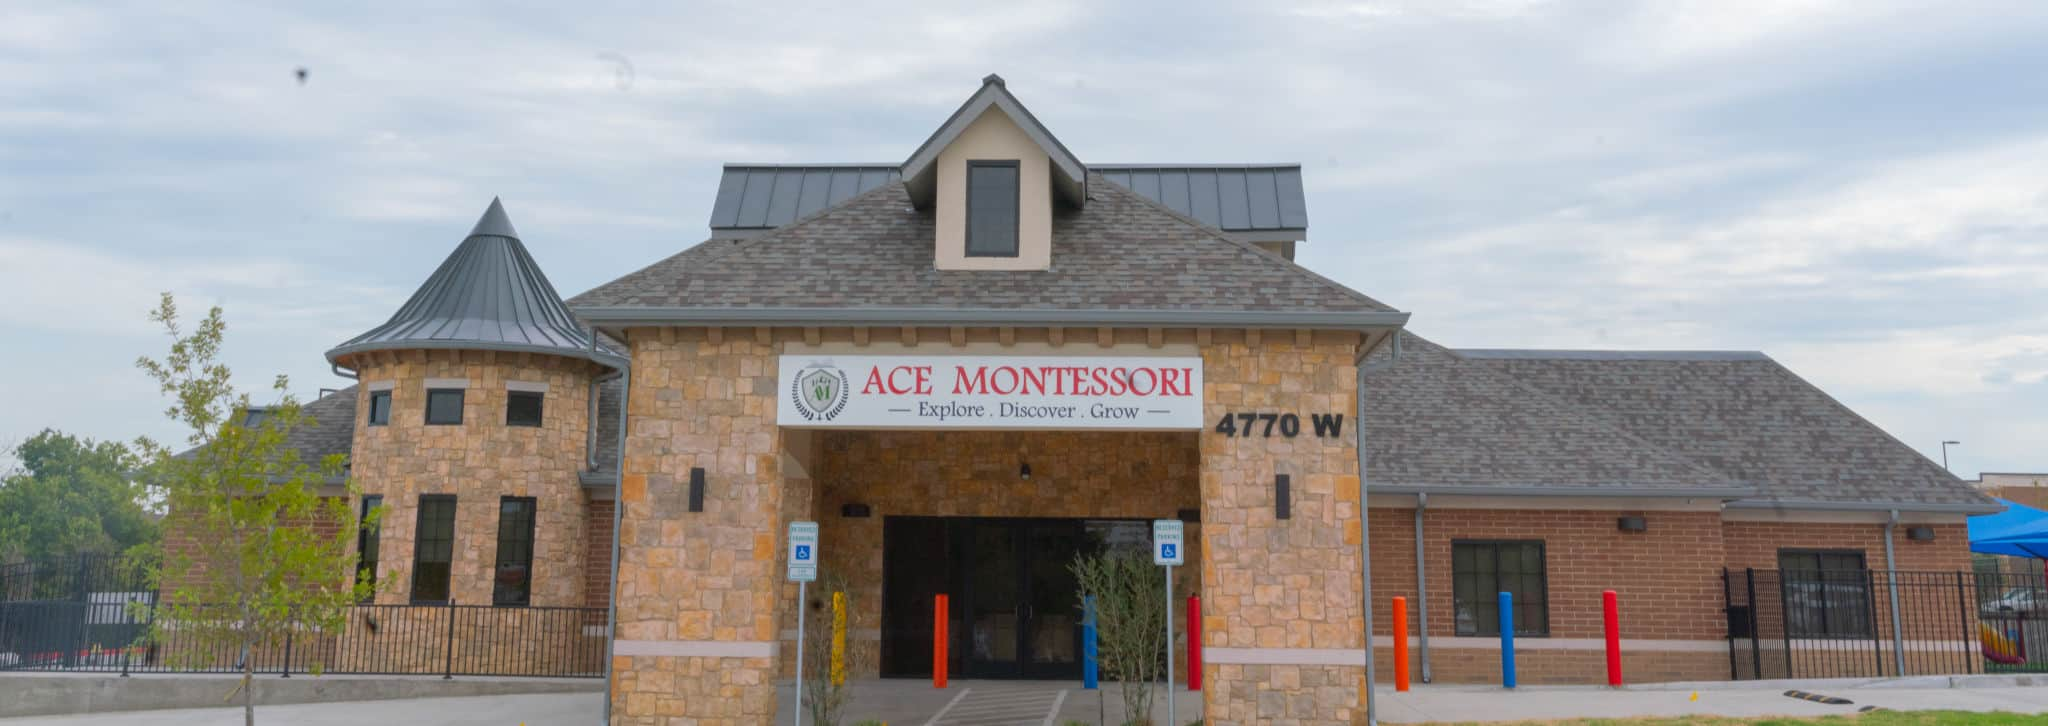 ace-montessori-front-picture